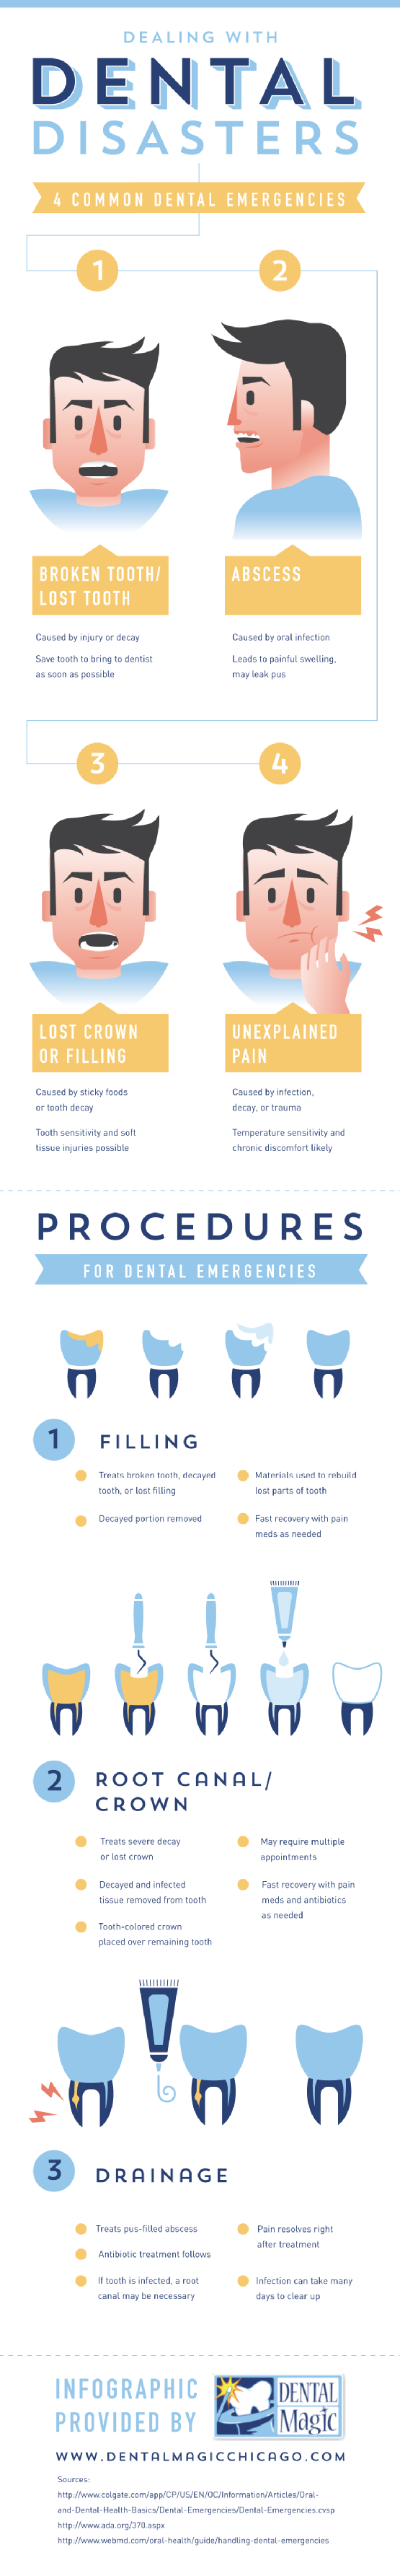 4-Common-Dental-Emergencies-and-How-to-Deal-With-Them-Infographic